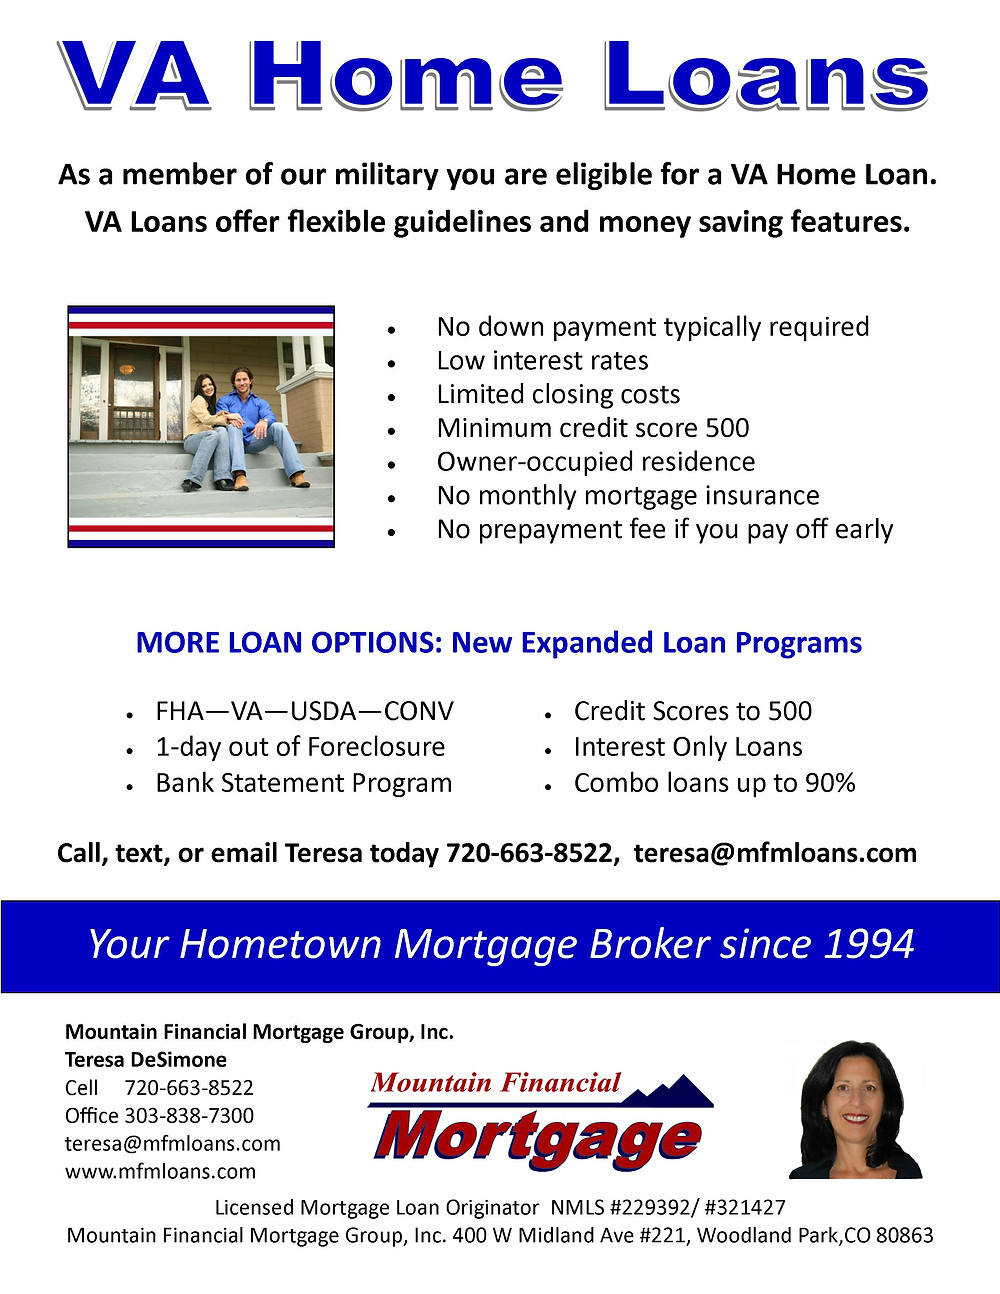 As a member of our military you are eligible for a VA Home Loan!